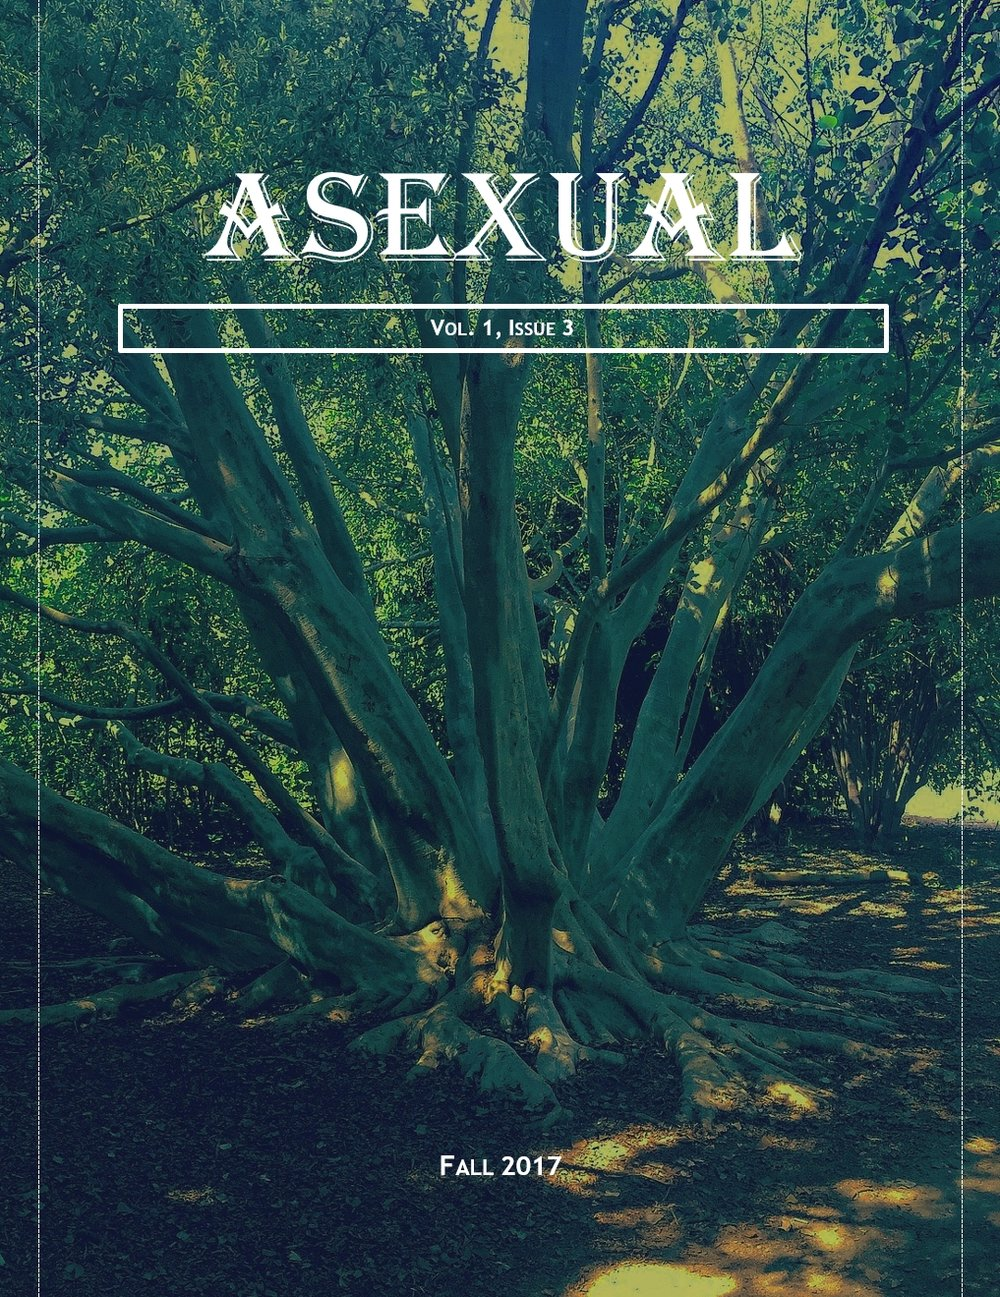 The Asexual is a quarterly journal featuring writers and creators from under the ace umbrella. This is the cover for volume 1, issue 3.